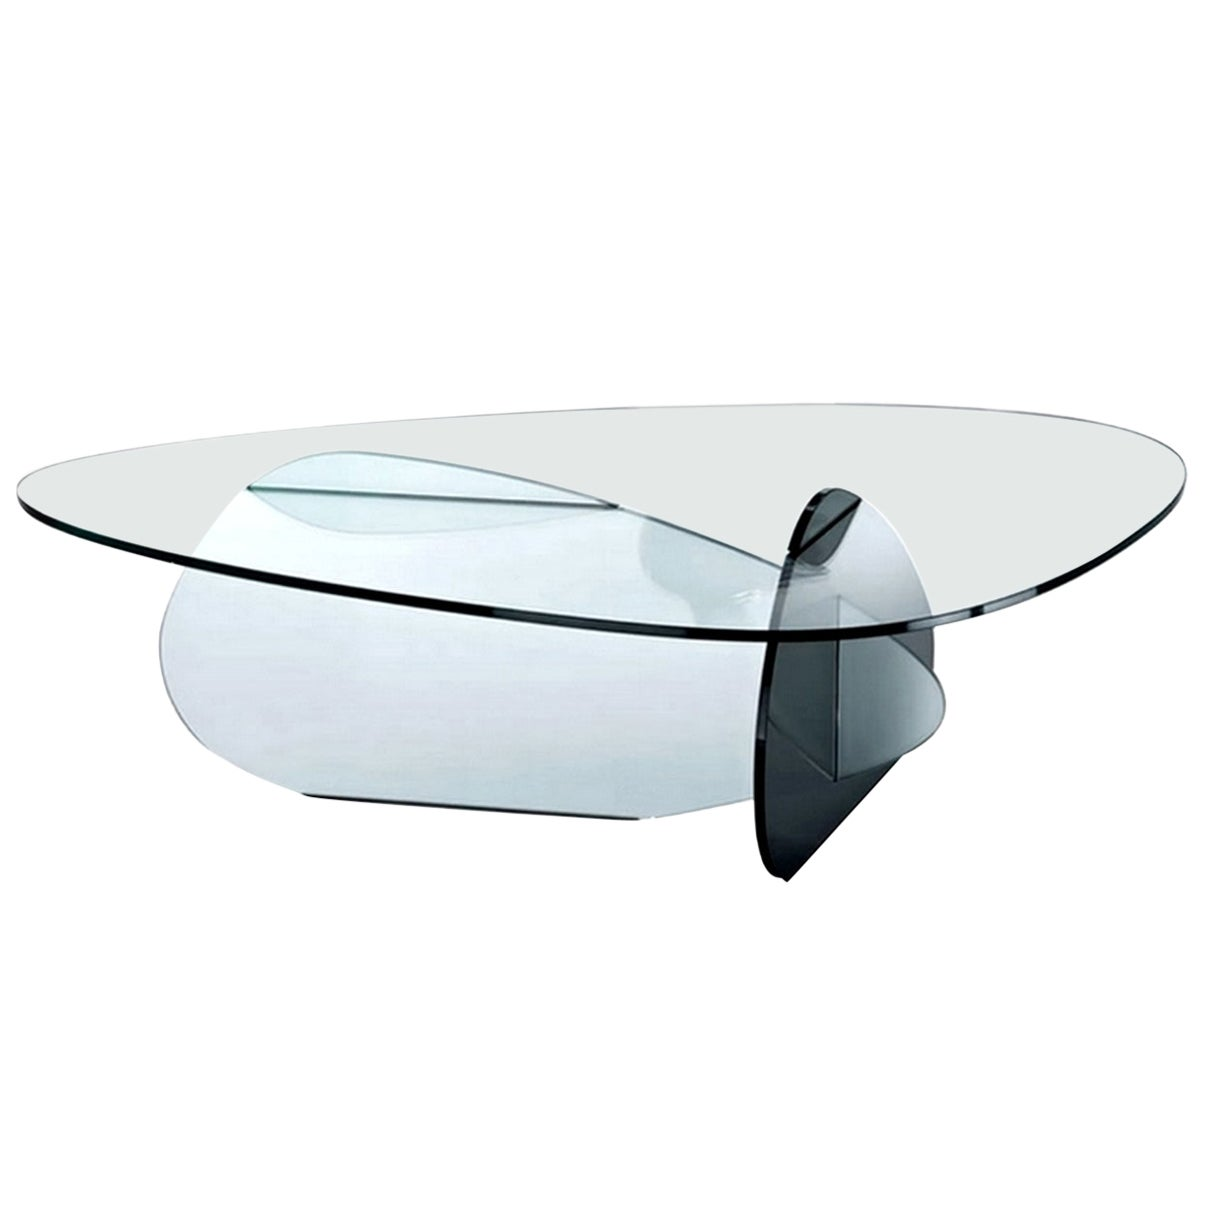 In stock in Los Angeles, Kat Glass Table Designed by Karim Rashid, Made in Italy